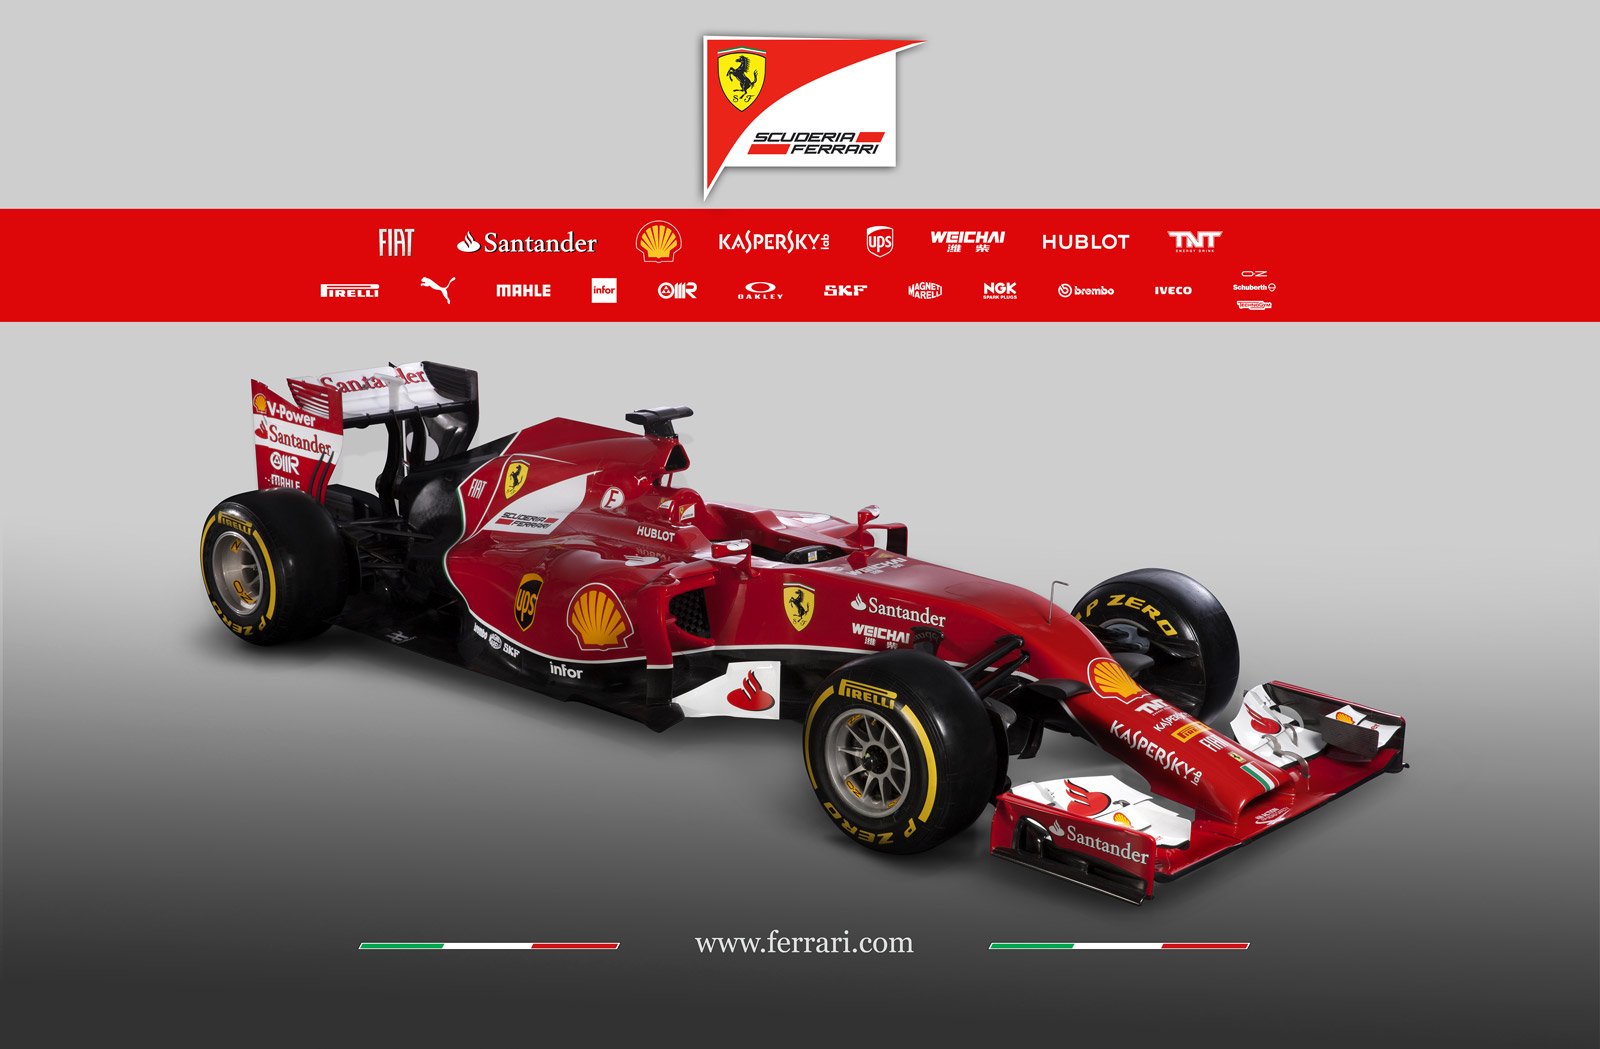 Ferraris F14 T 2014 Formula One Car 100454334 H Jpg